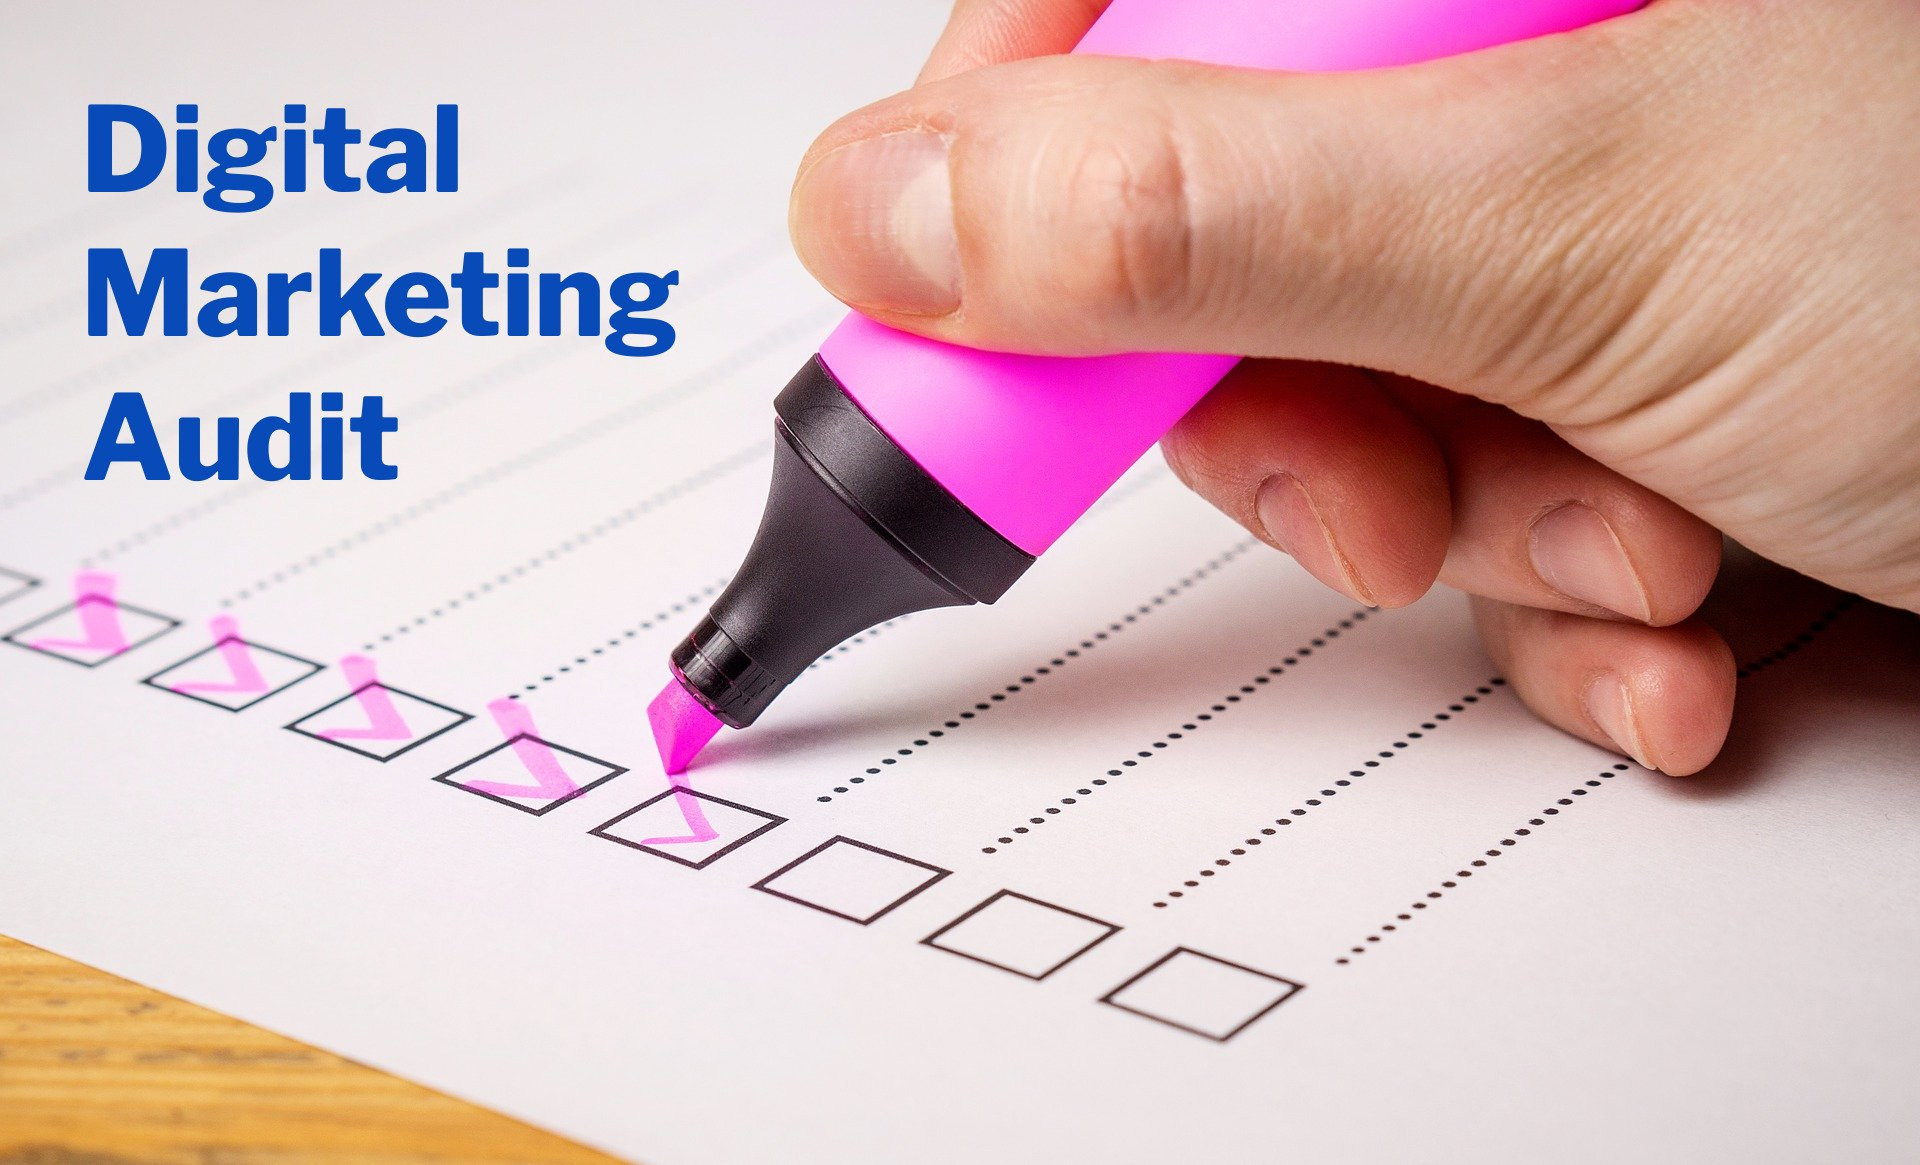 How To Promote A Business Online - Do A Digital Marketing Audit